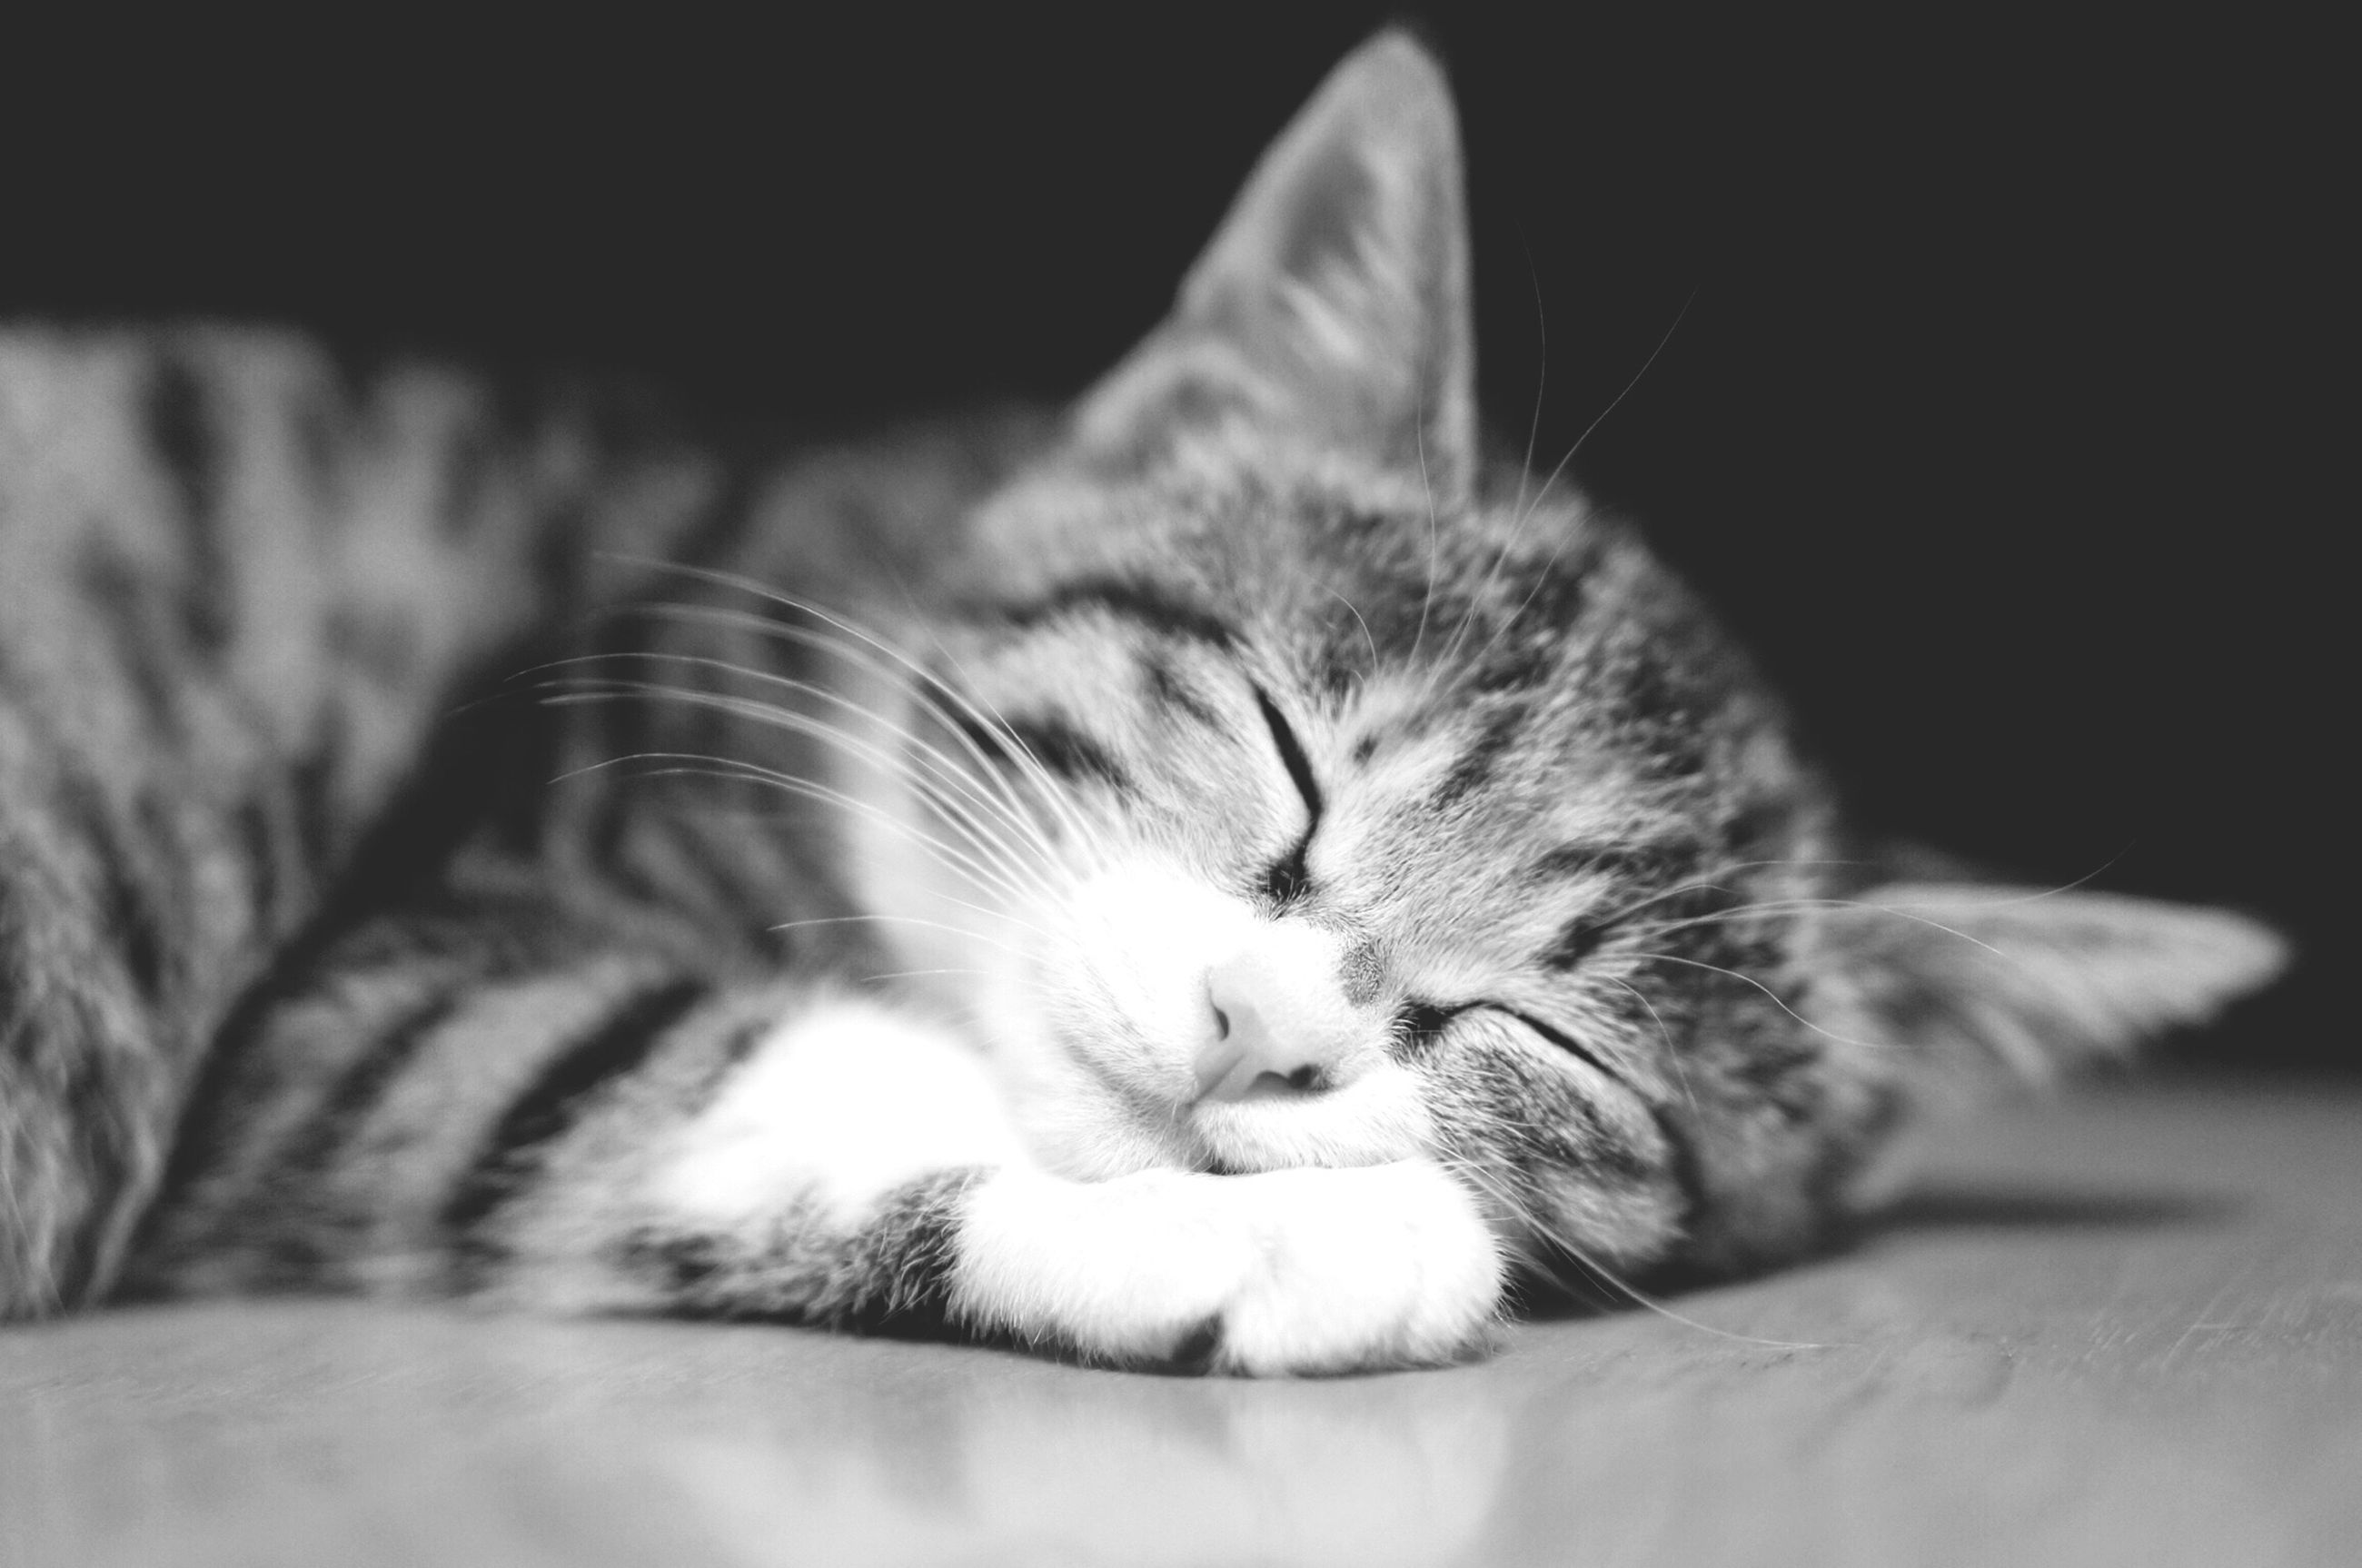 domestic cat, cat, pets, feline, domestic animals, one animal, animal themes, mammal, whisker, indoors, relaxation, resting, close-up, lying down, sleeping, eyes closed, animal head, bed, no people, home interior